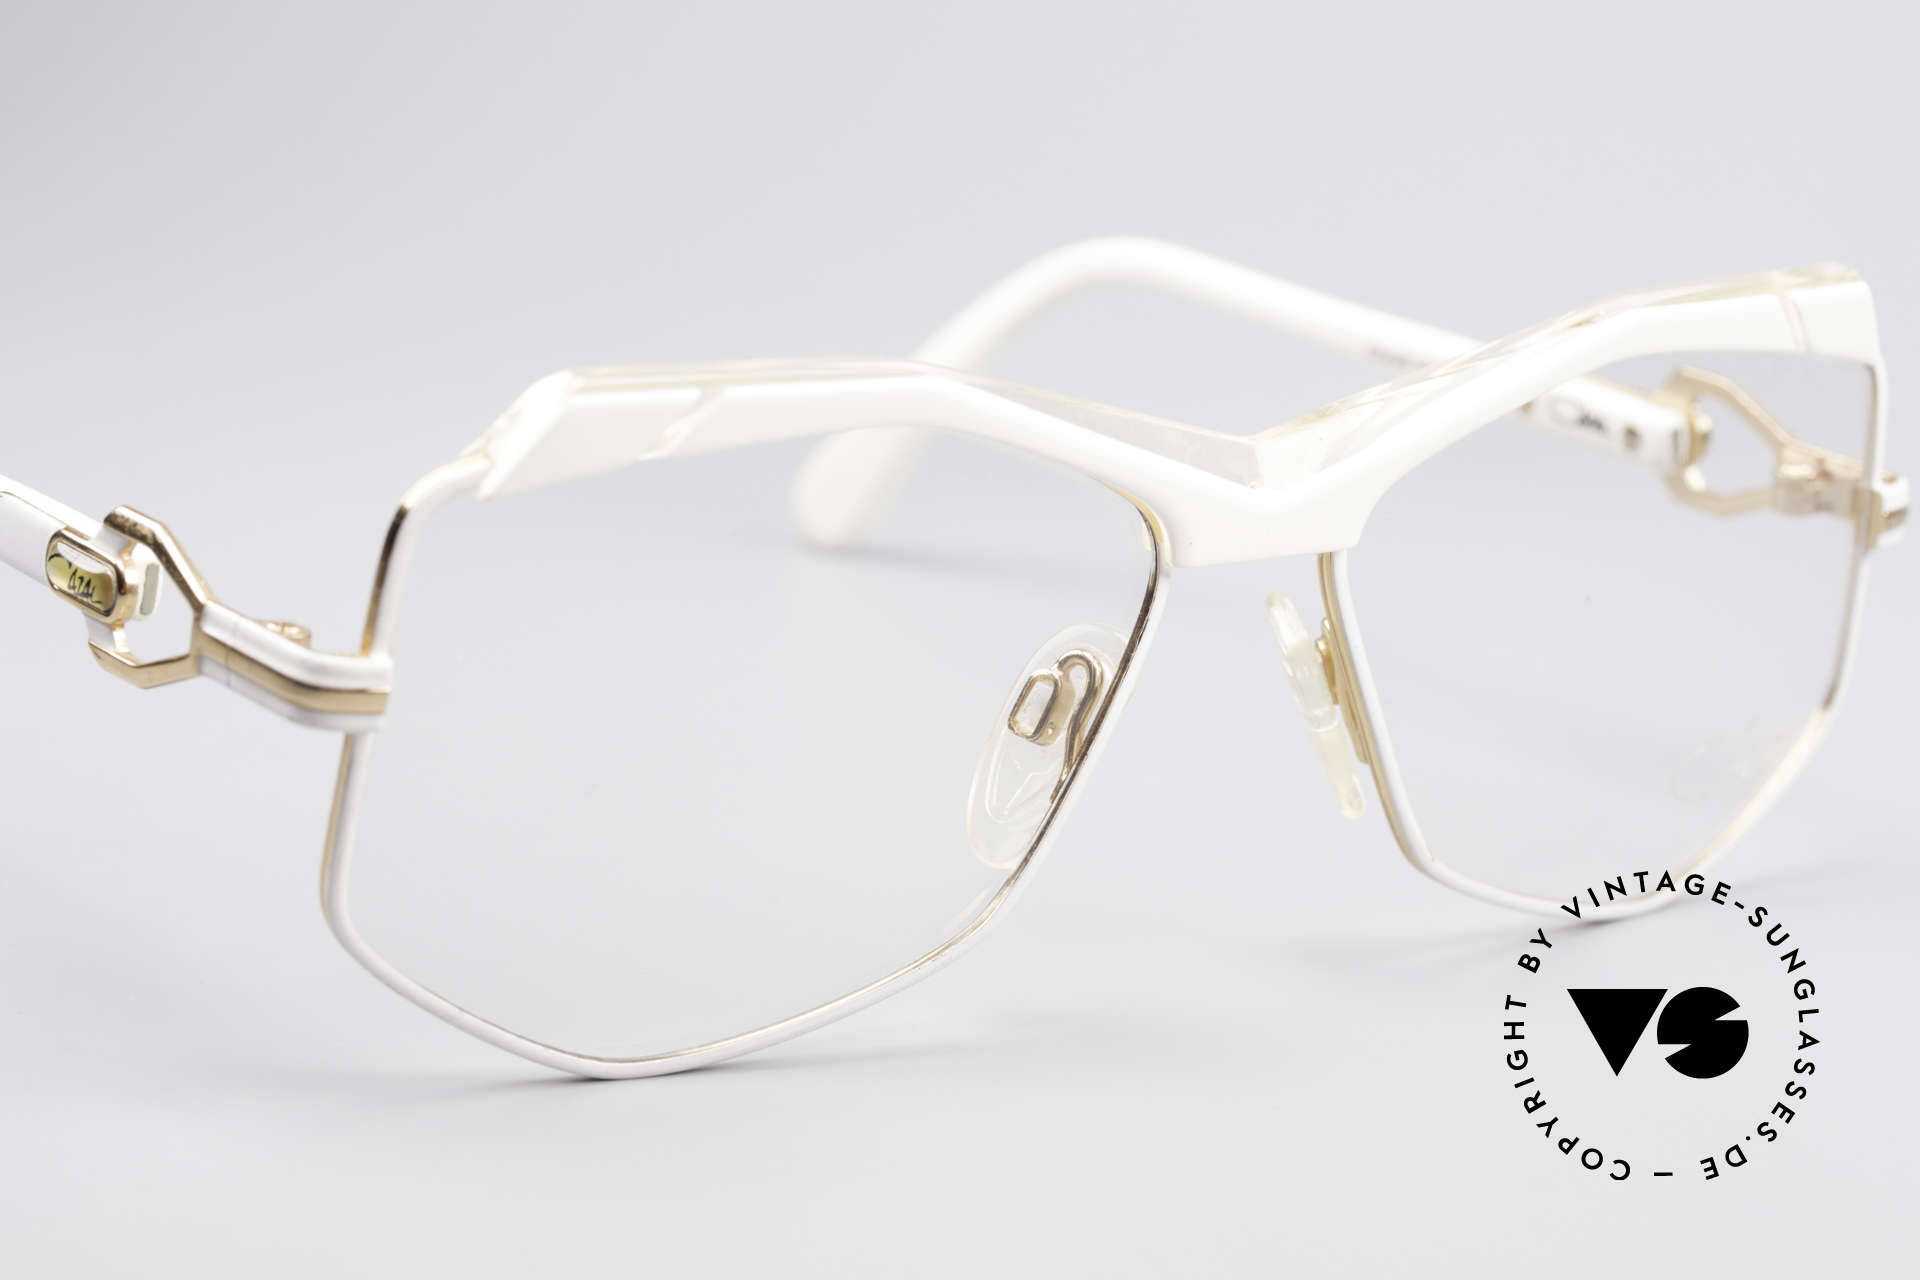 Cazal 230 80's Hip Hop Vintage Frame, NO RETRO frame, but a 'W.Germany' ORIGINAL, Made for Women